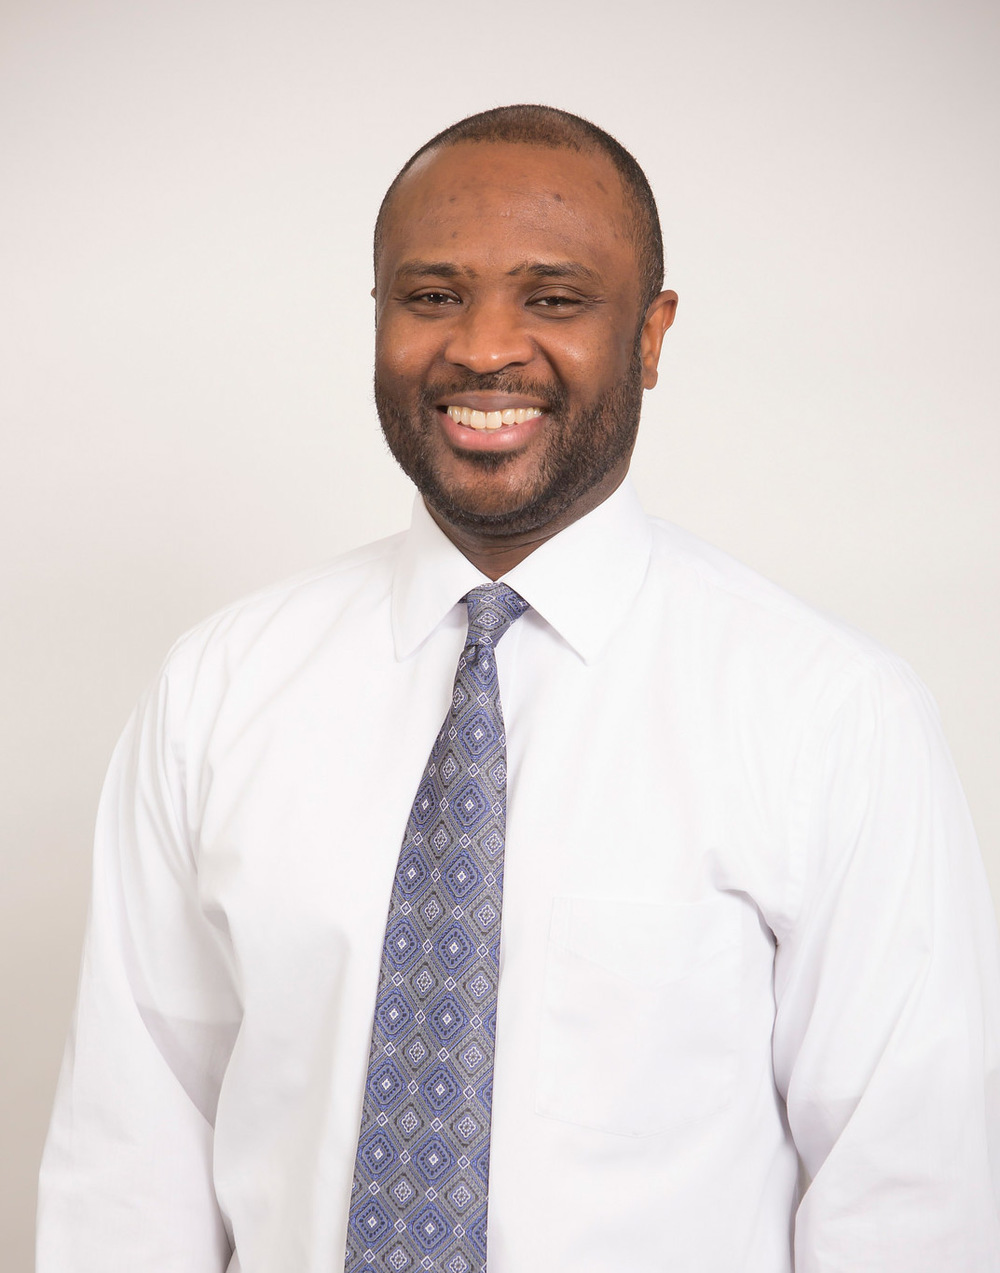 Mario Nelson Level 1 Technical Staff mnelson@sipartners.net